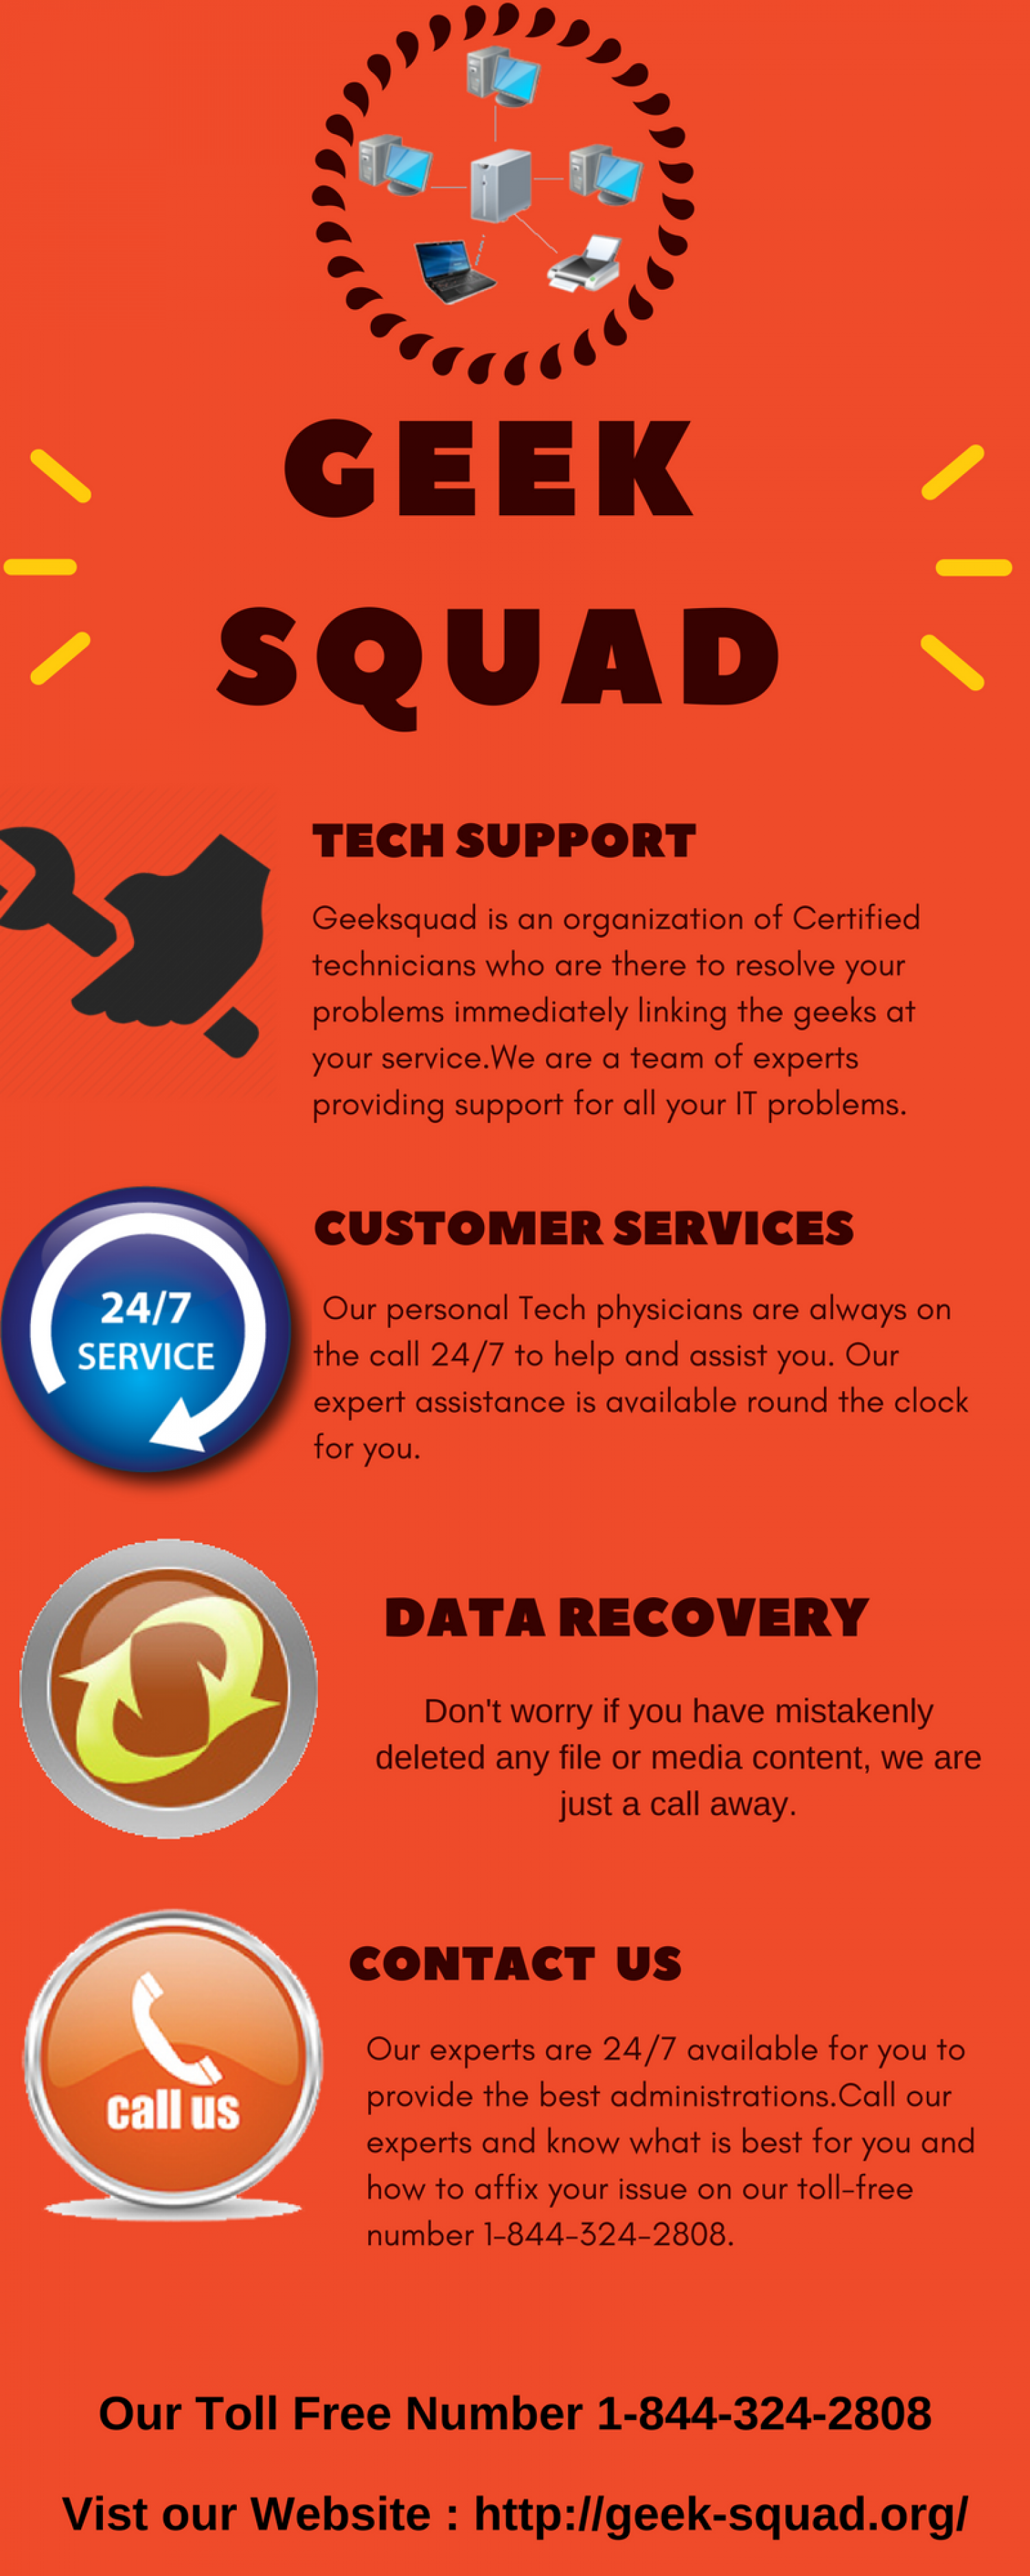 Geek Squad Online Technical Assistance 1-844-324-2808 Number Infographic